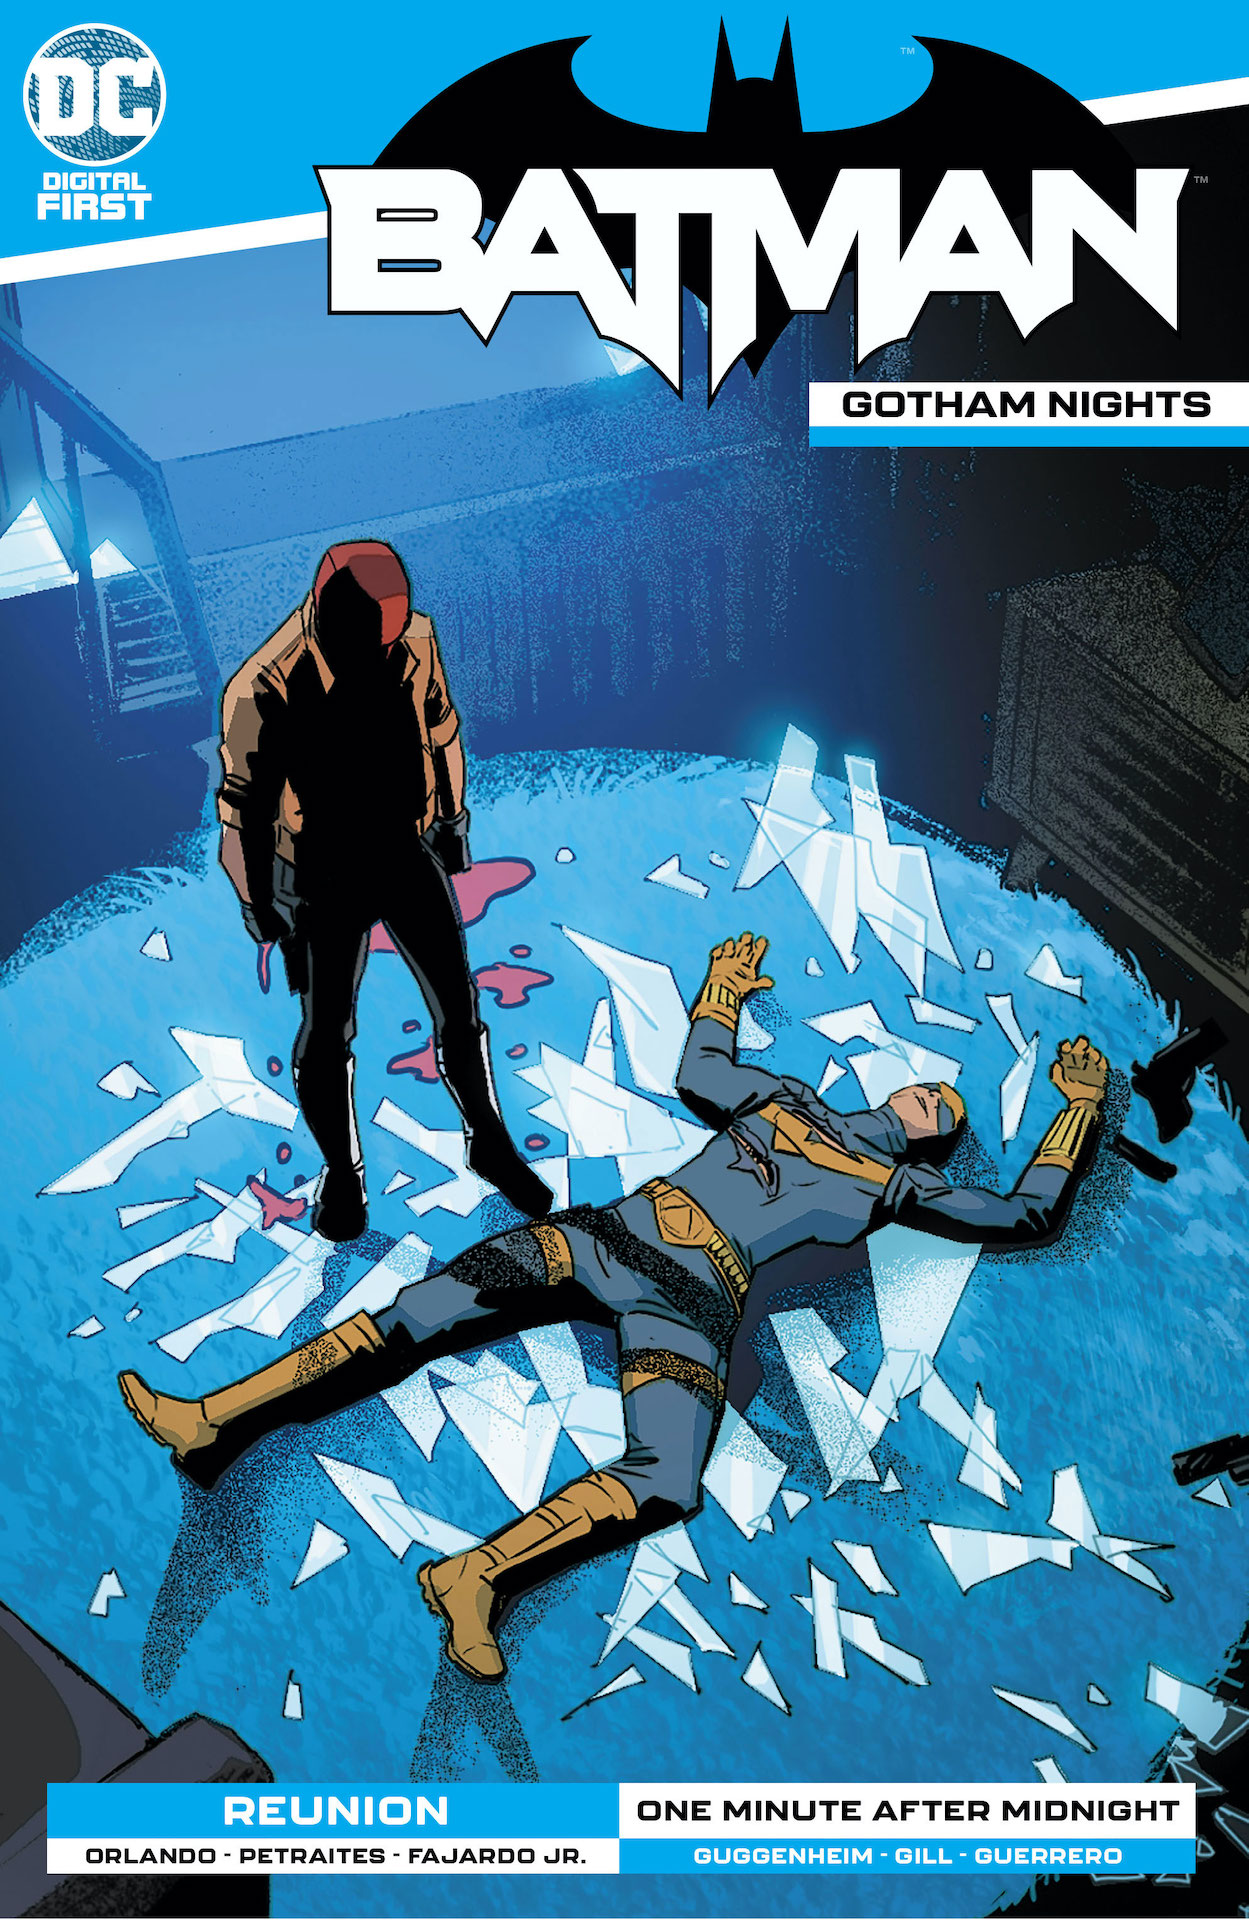 Batman: Gotham Nights #11 contains two stories, 'Reunion' and 'One Minute After Midnight.'